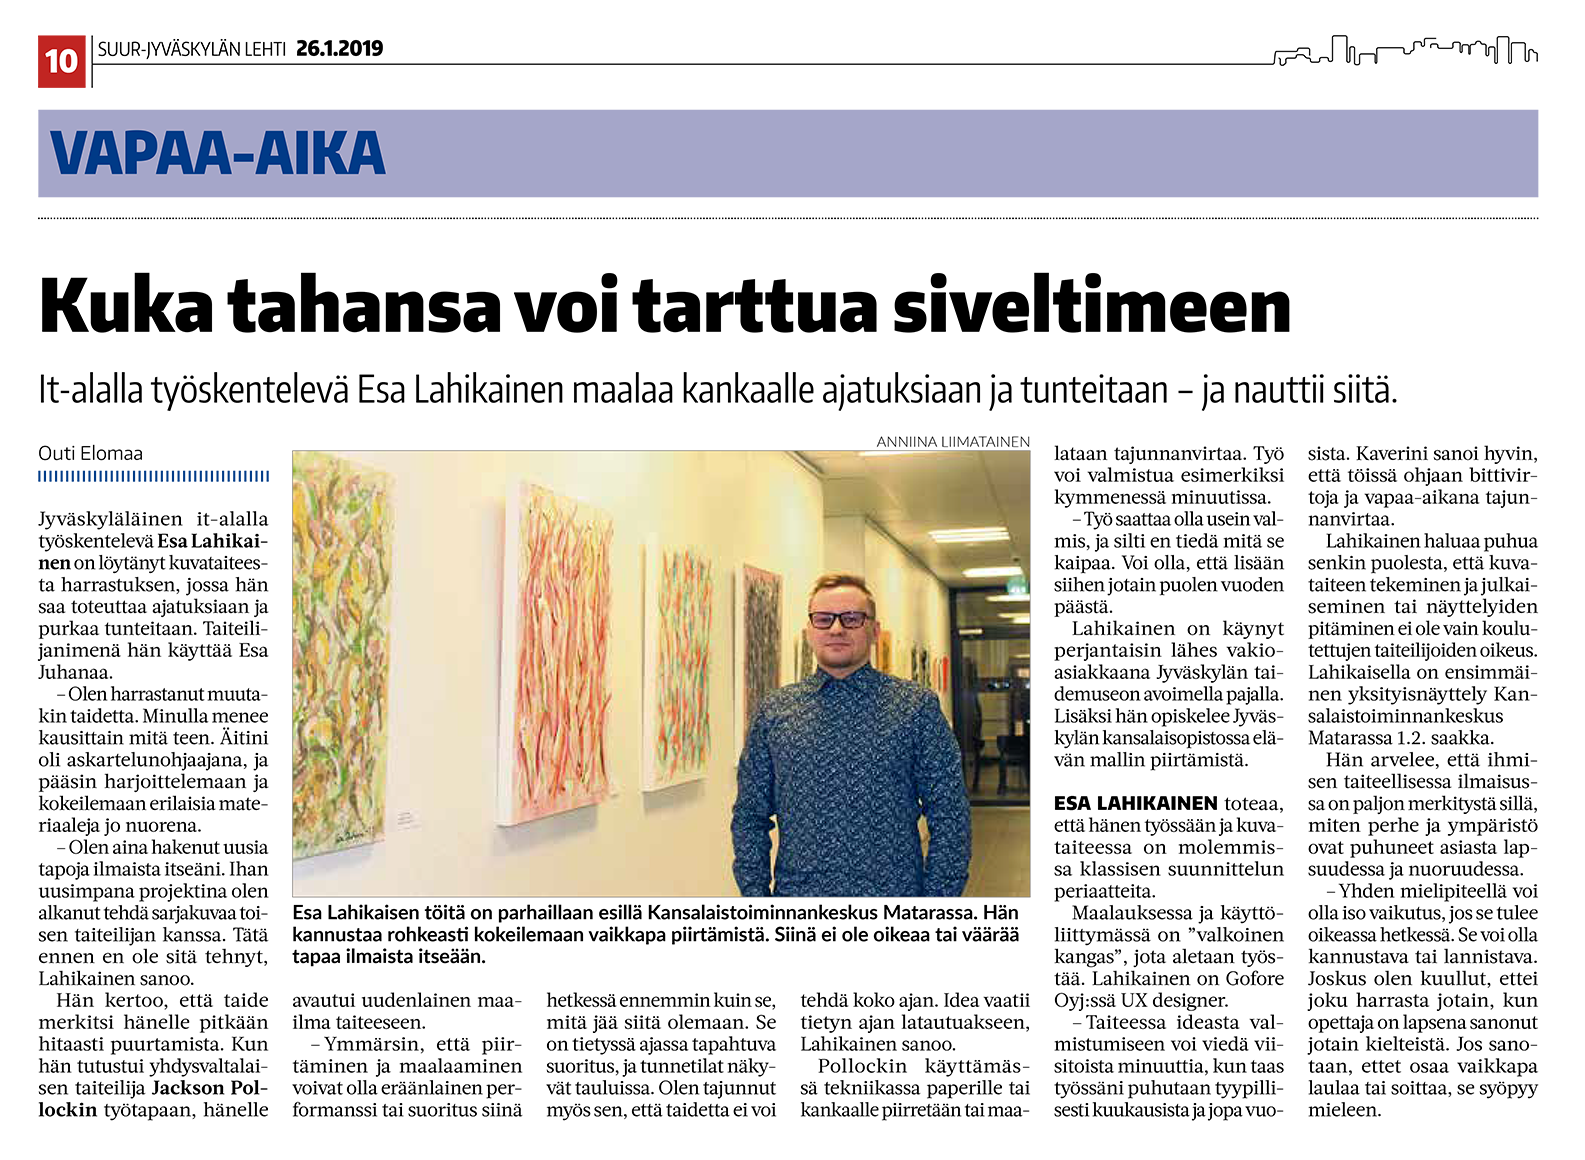 Article on Suur-Jyväskylän Lehti 26th of January, 2019 (finnish only)